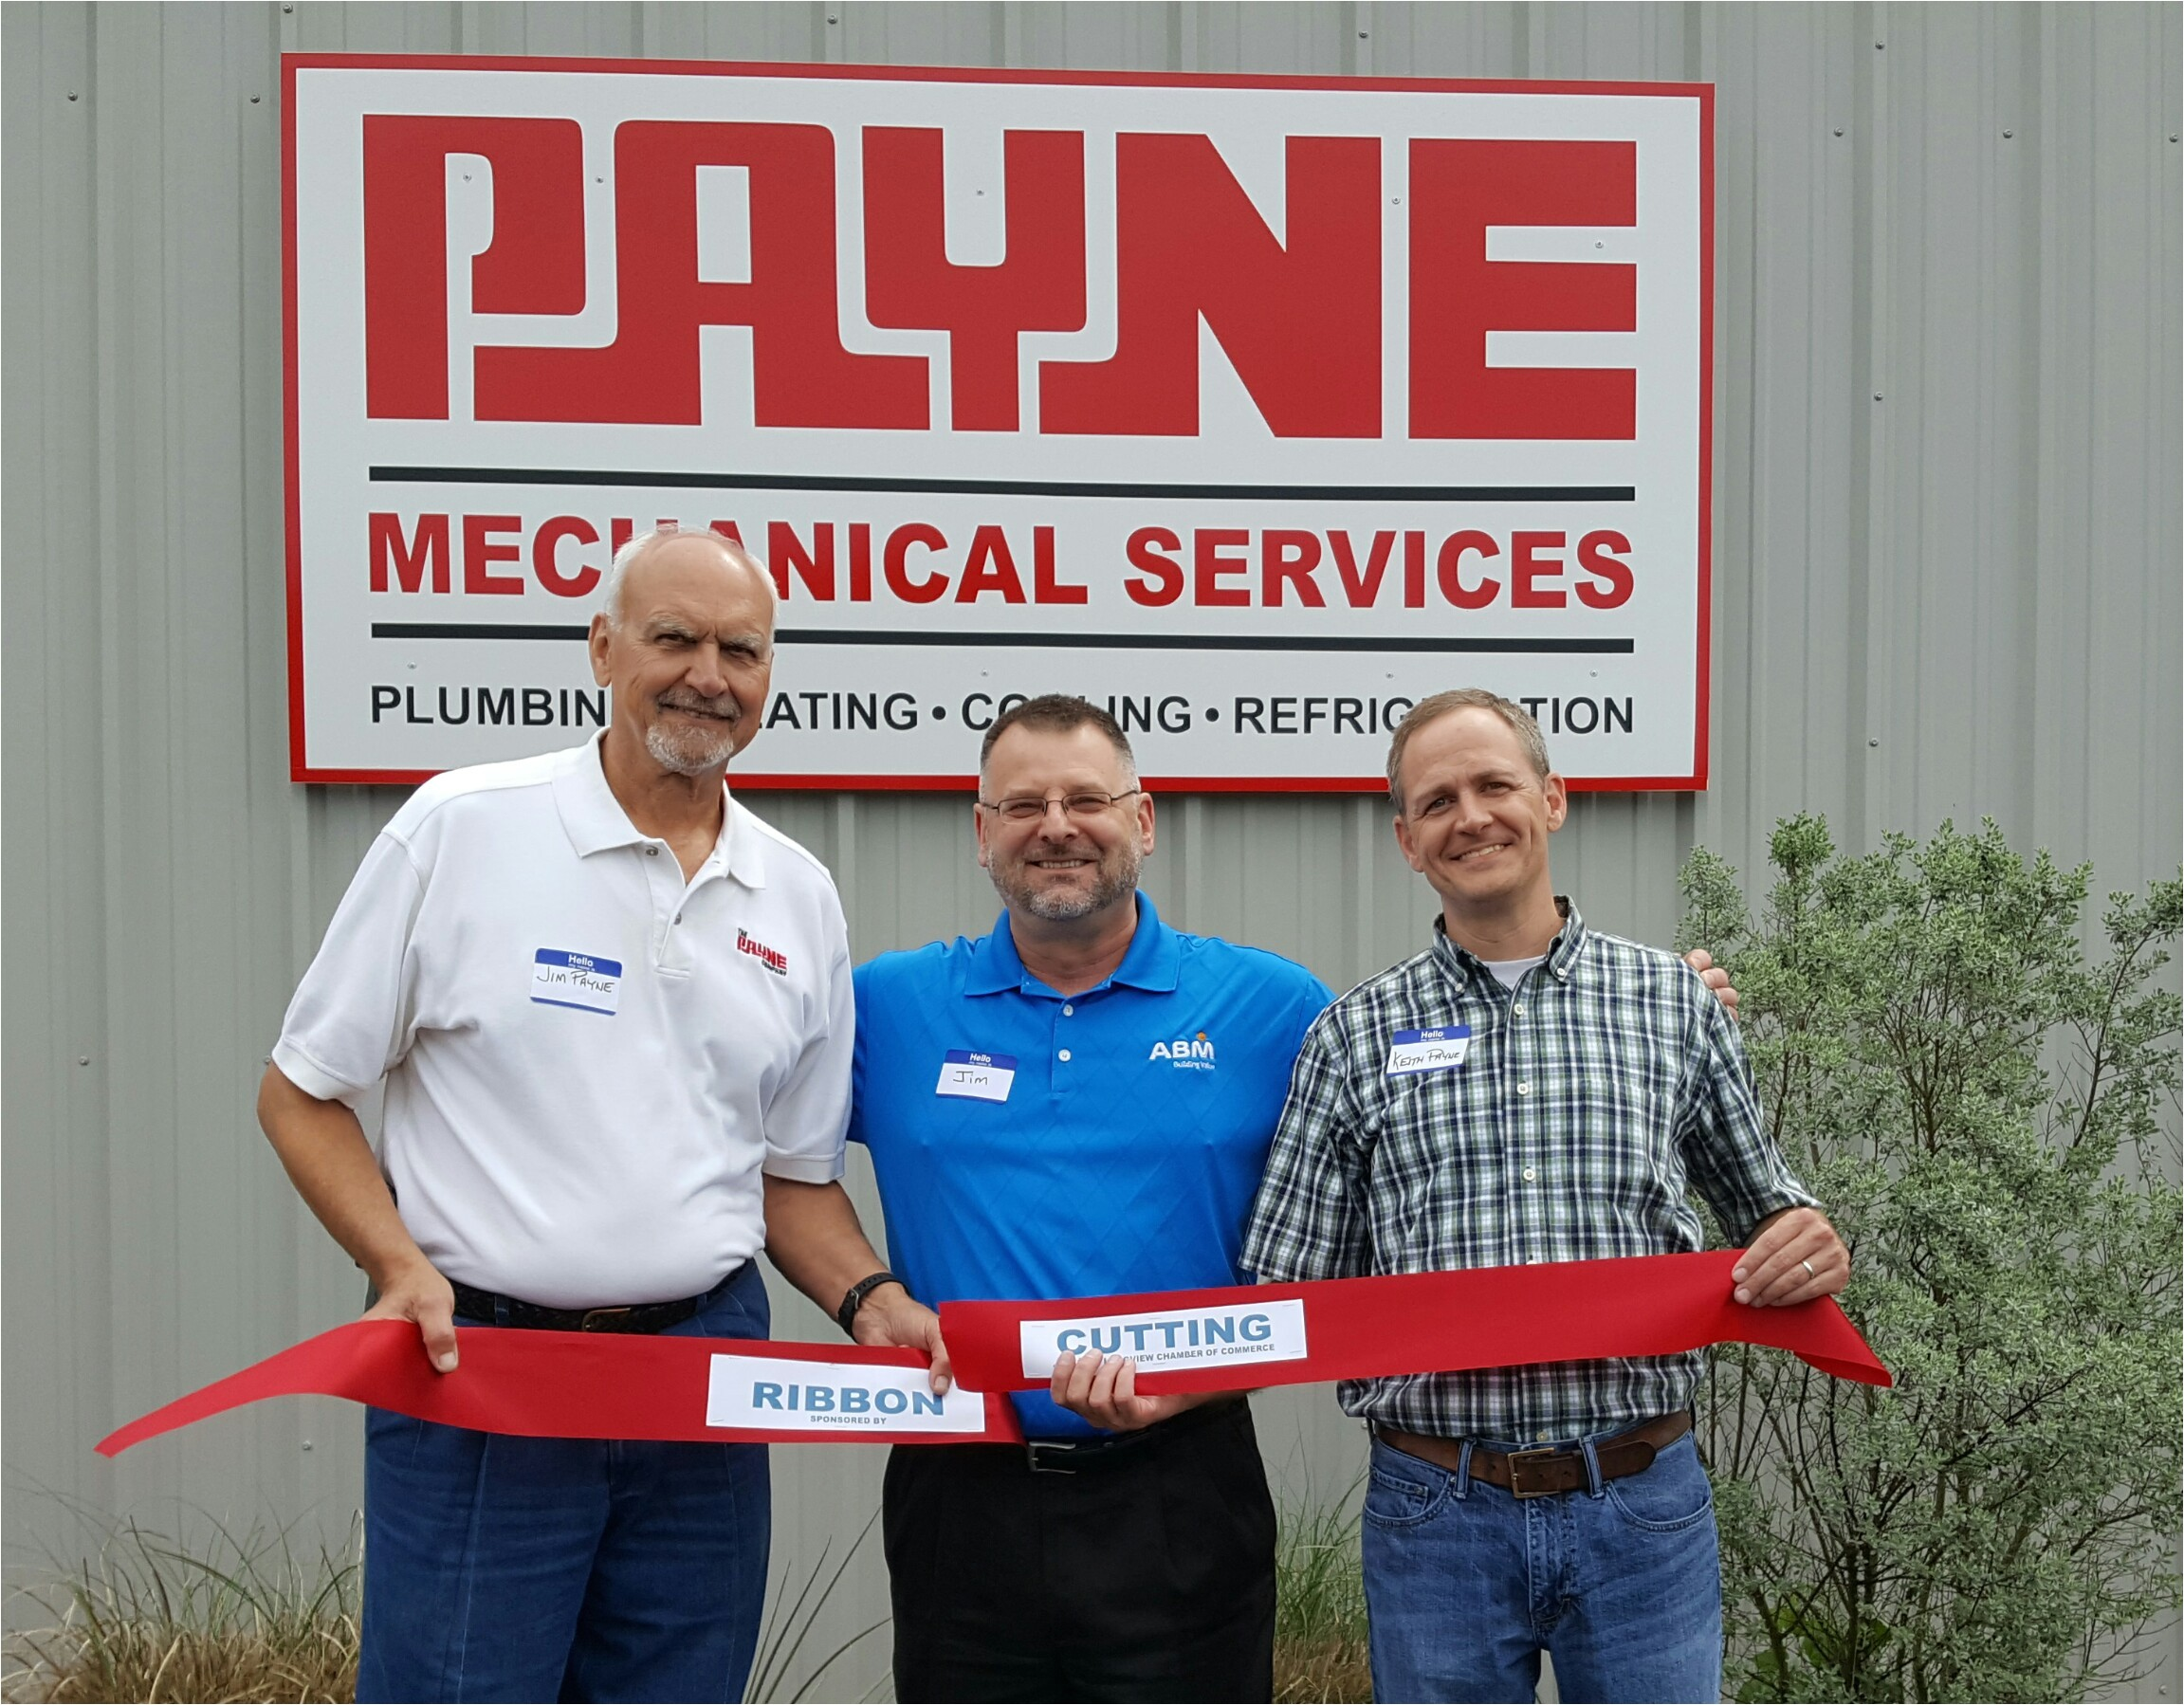 payne mechanical services principals jim payne left and keith payne right celebrate the opening of the company s new location in longview texas